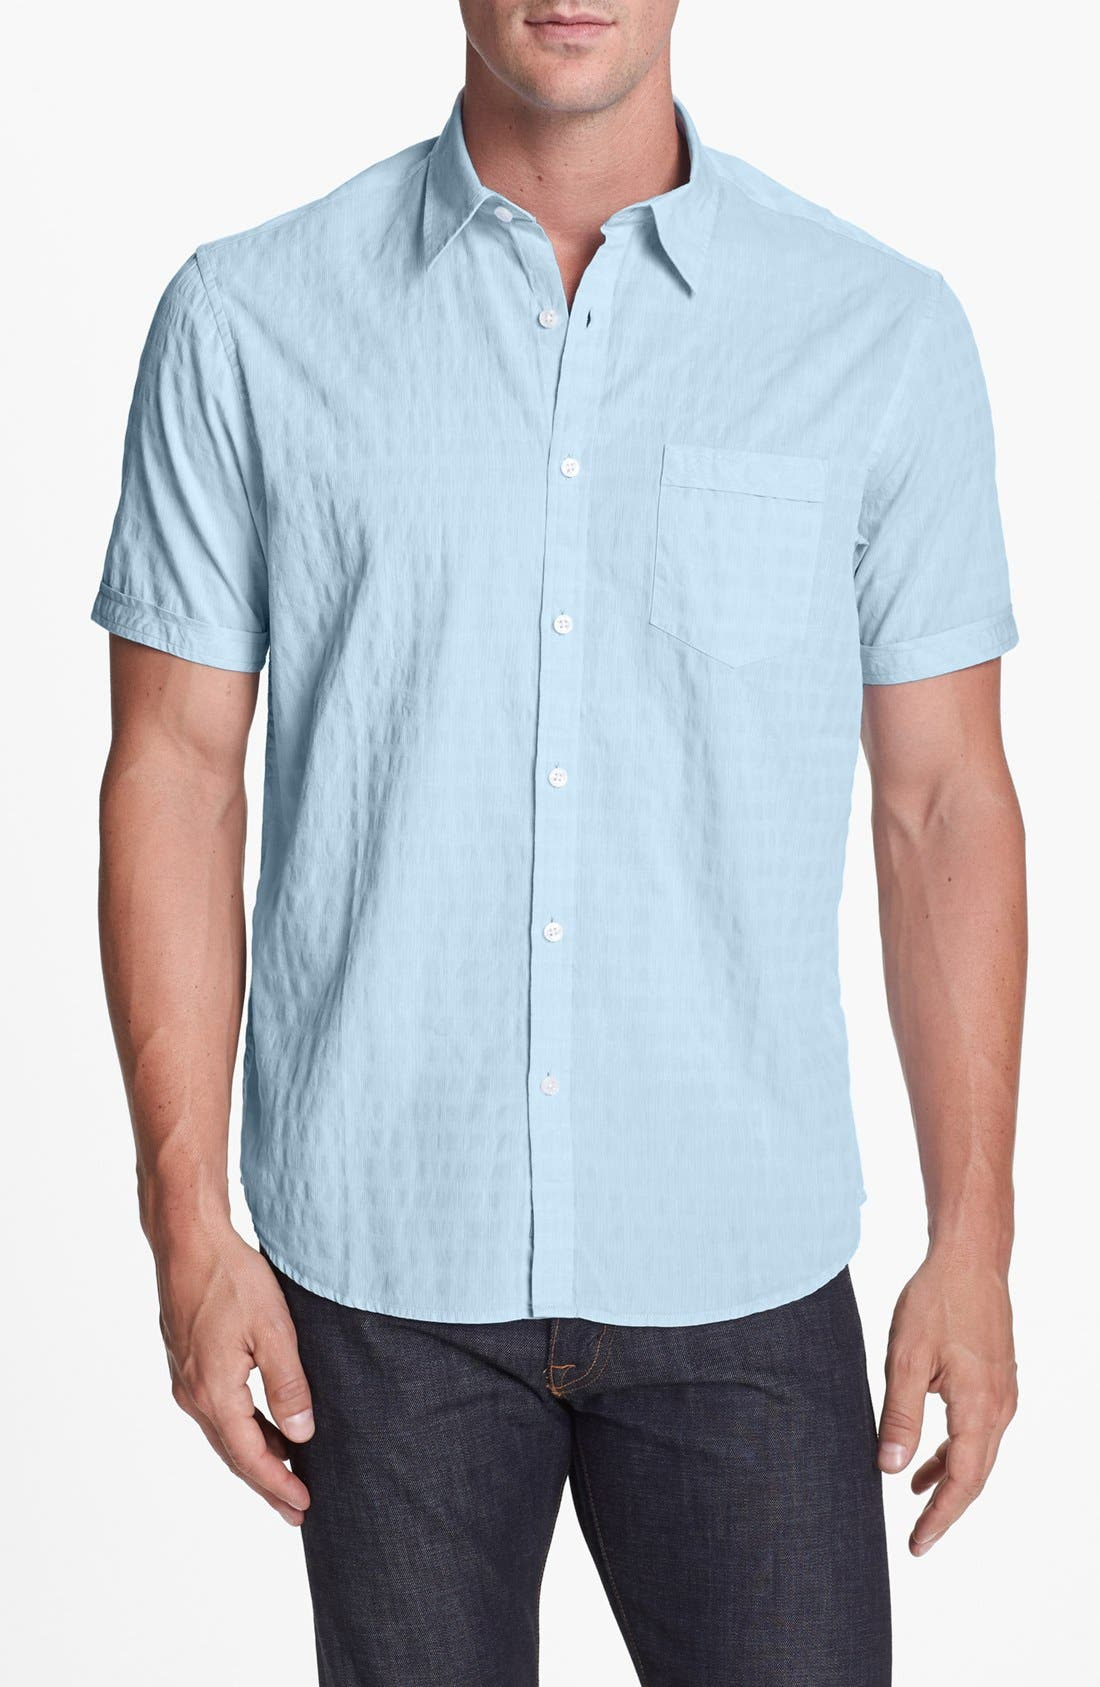 Alternate Image 1 Selected - James Campbell Short Sleeve Sport Shirt